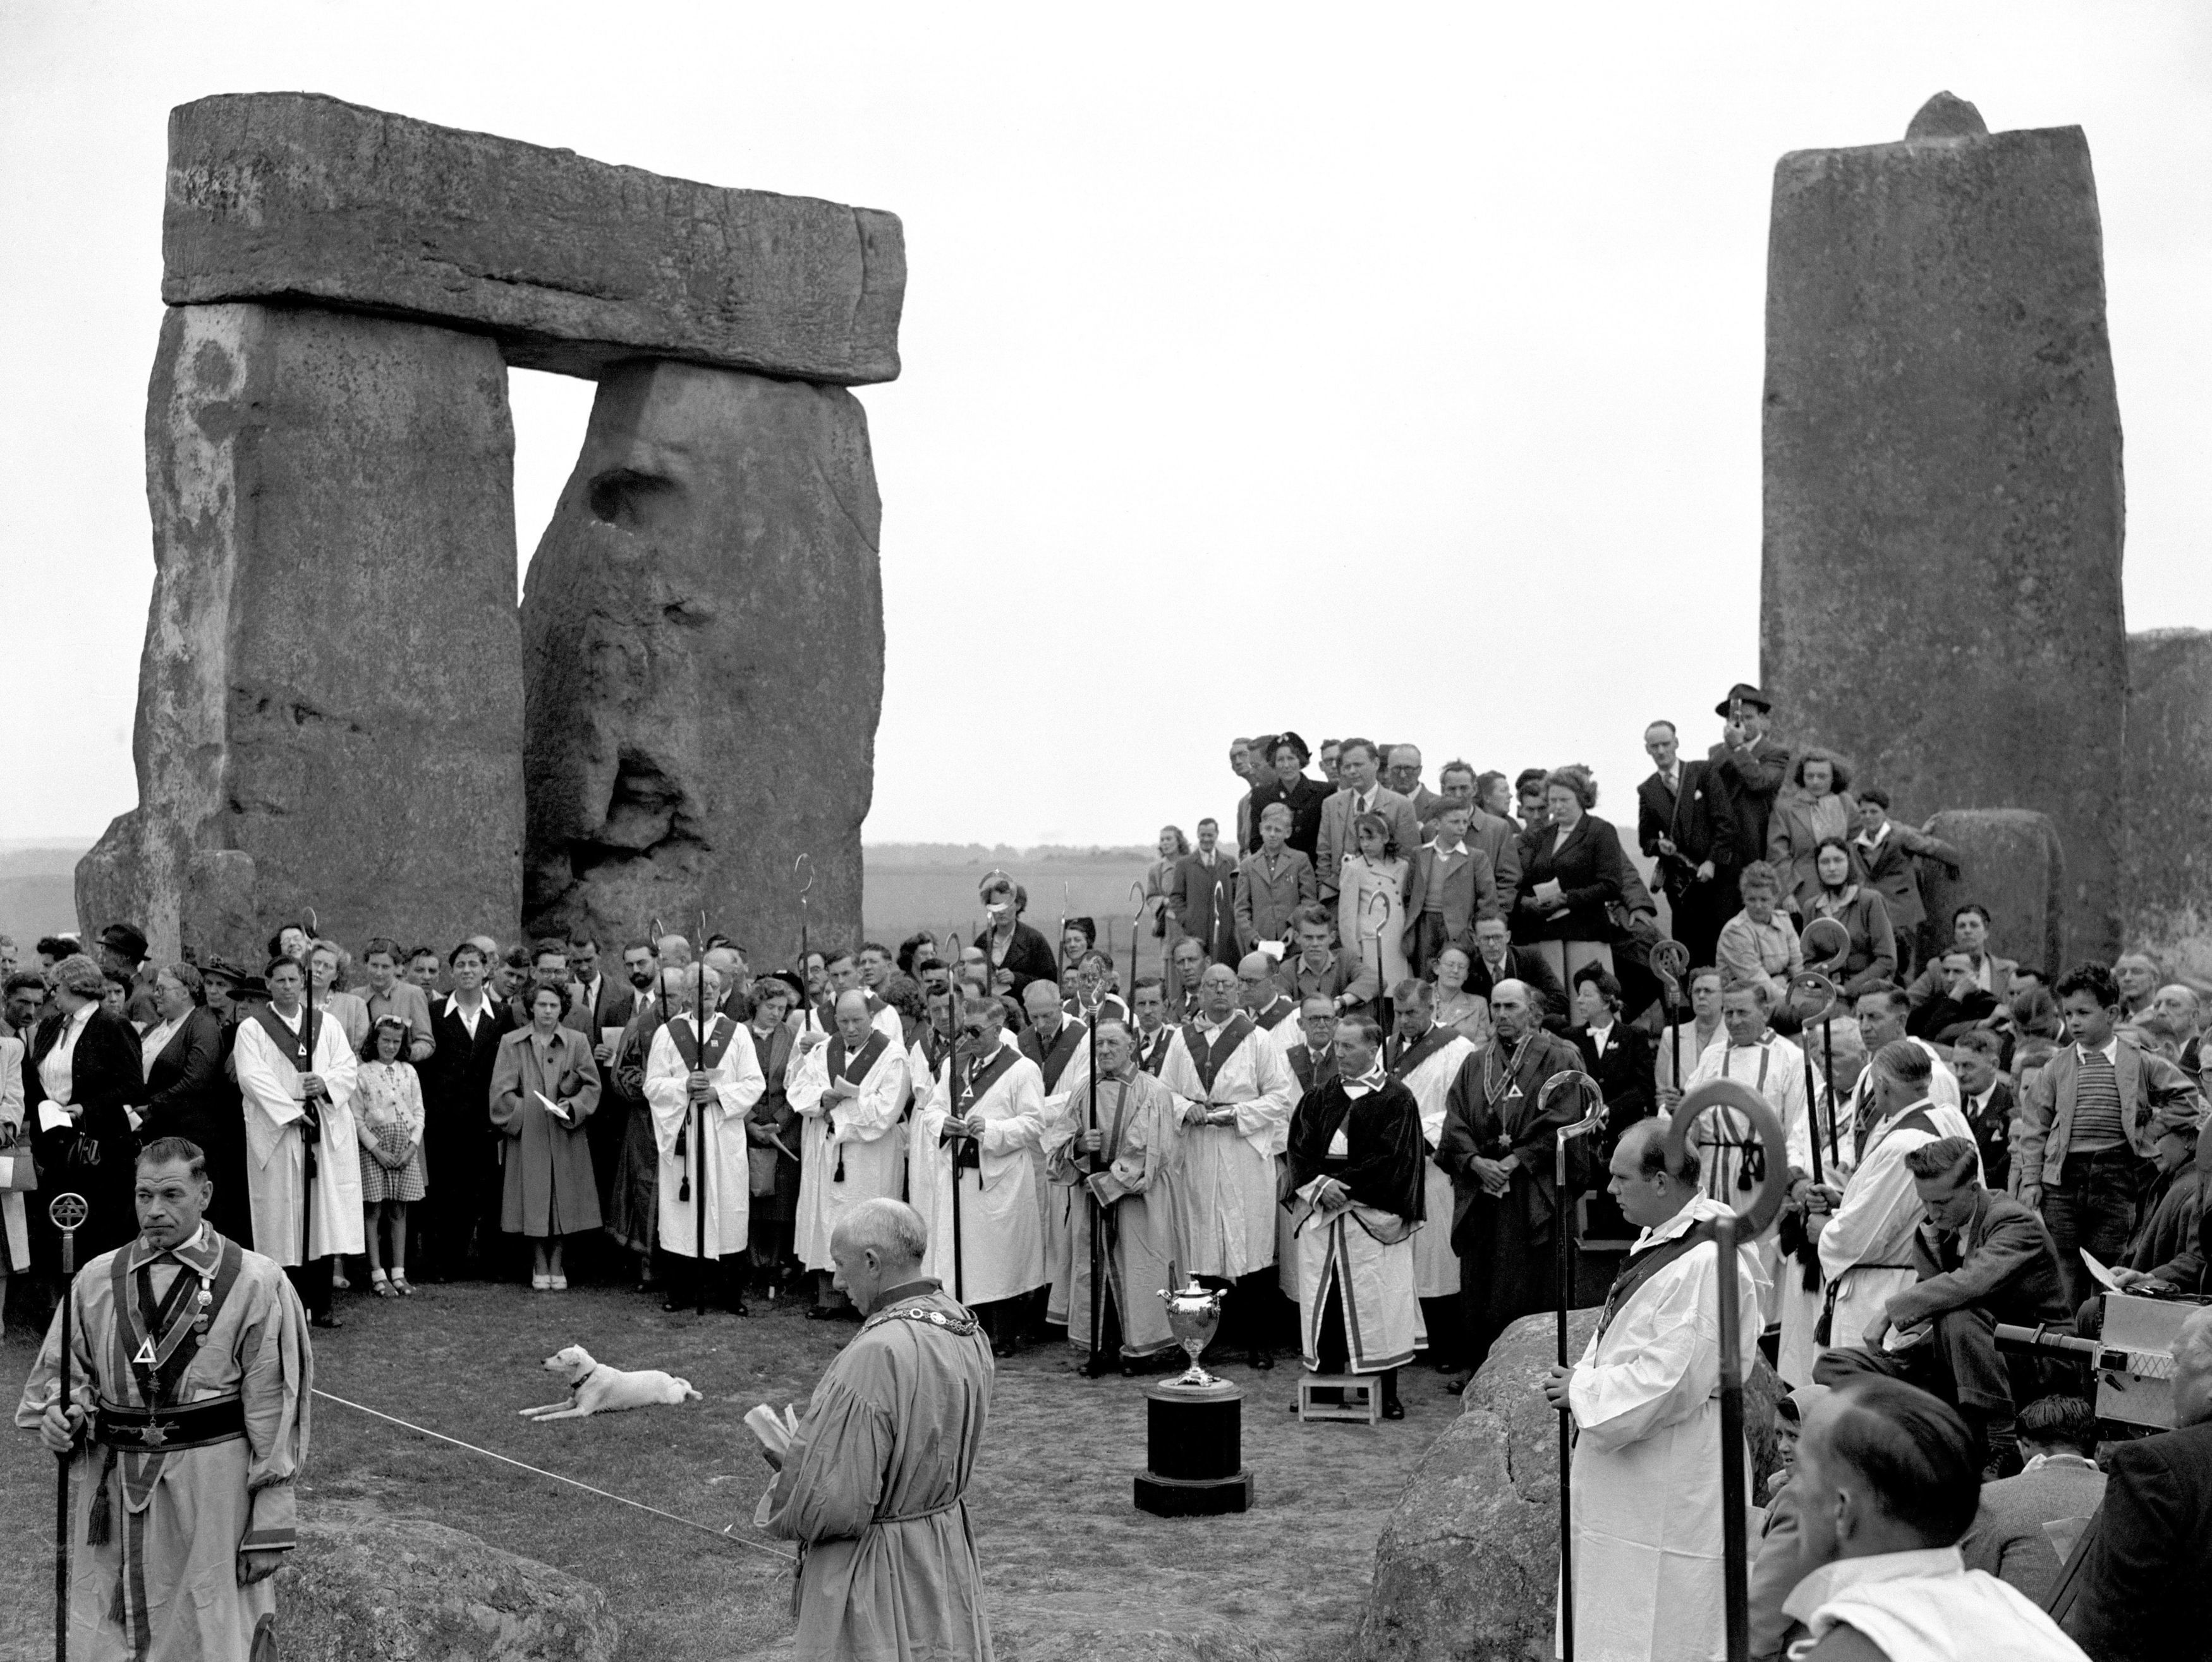 Members of the Haemus Lodge (Brighton and Worthing District of Sussex) during their mid-summer ceremony at Stonehenge in 1949